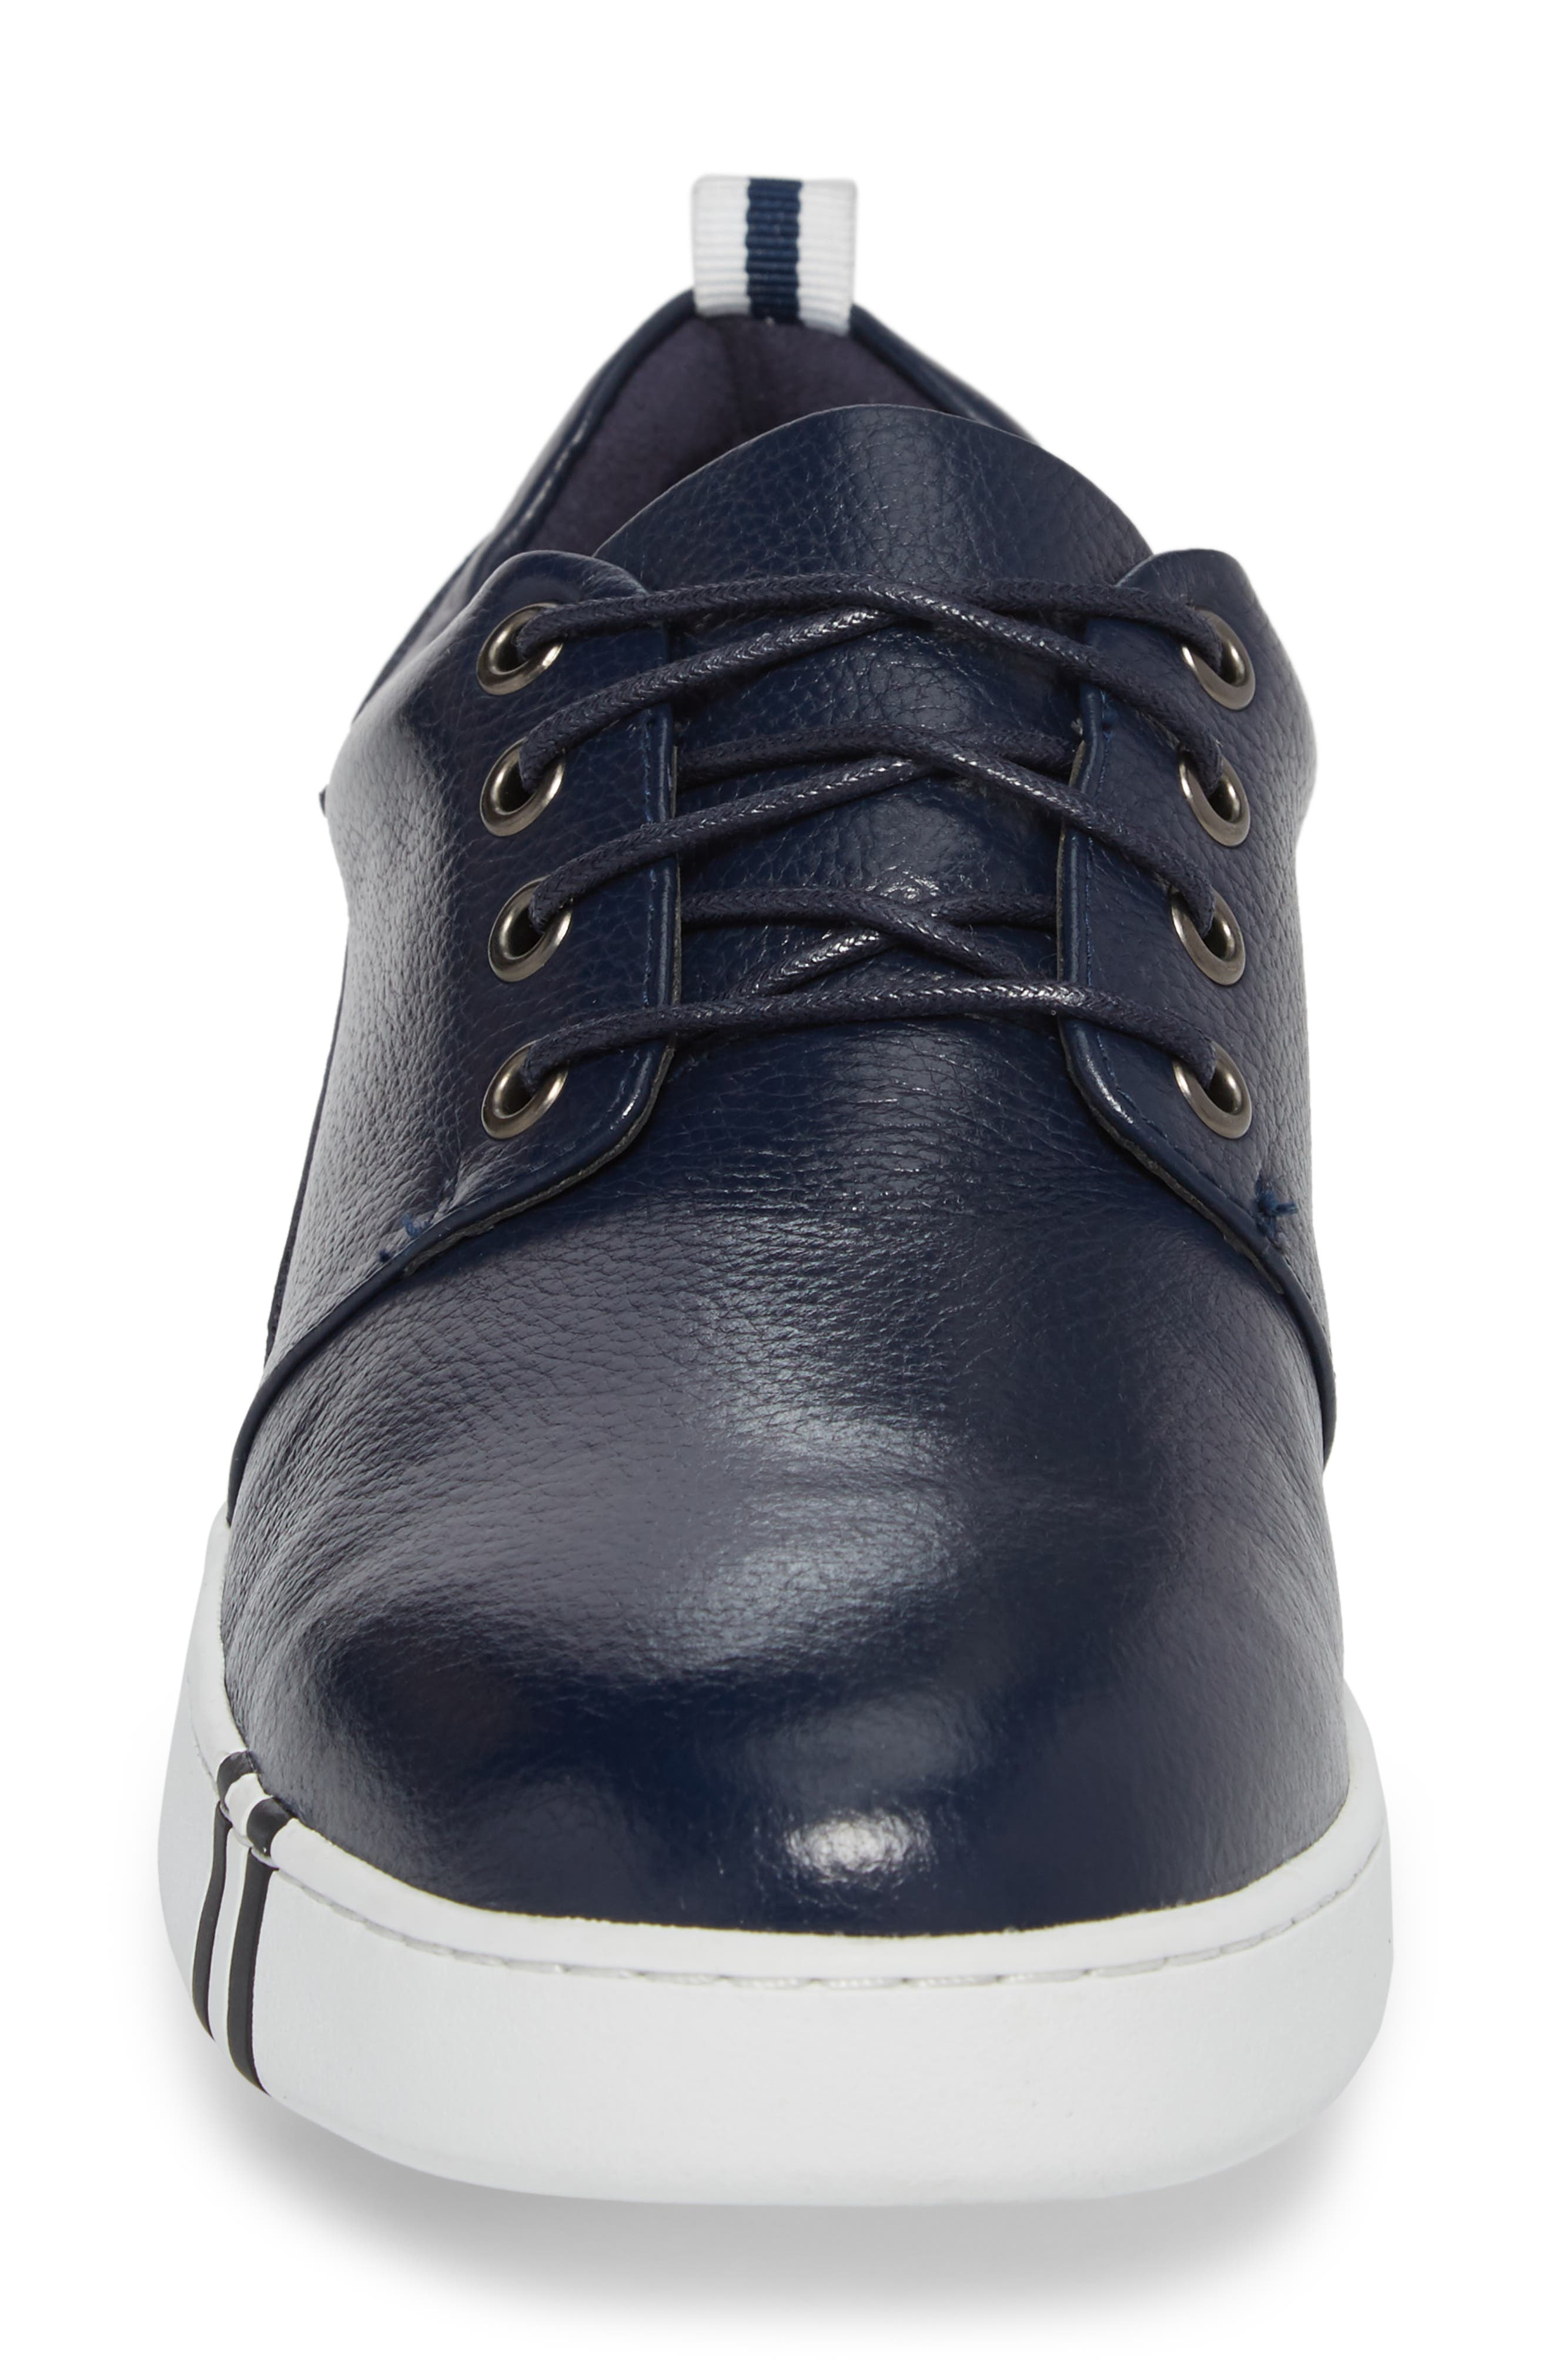 Kings Low Top Sneaker,                             Alternate thumbnail 4, color,                             Navy Leather